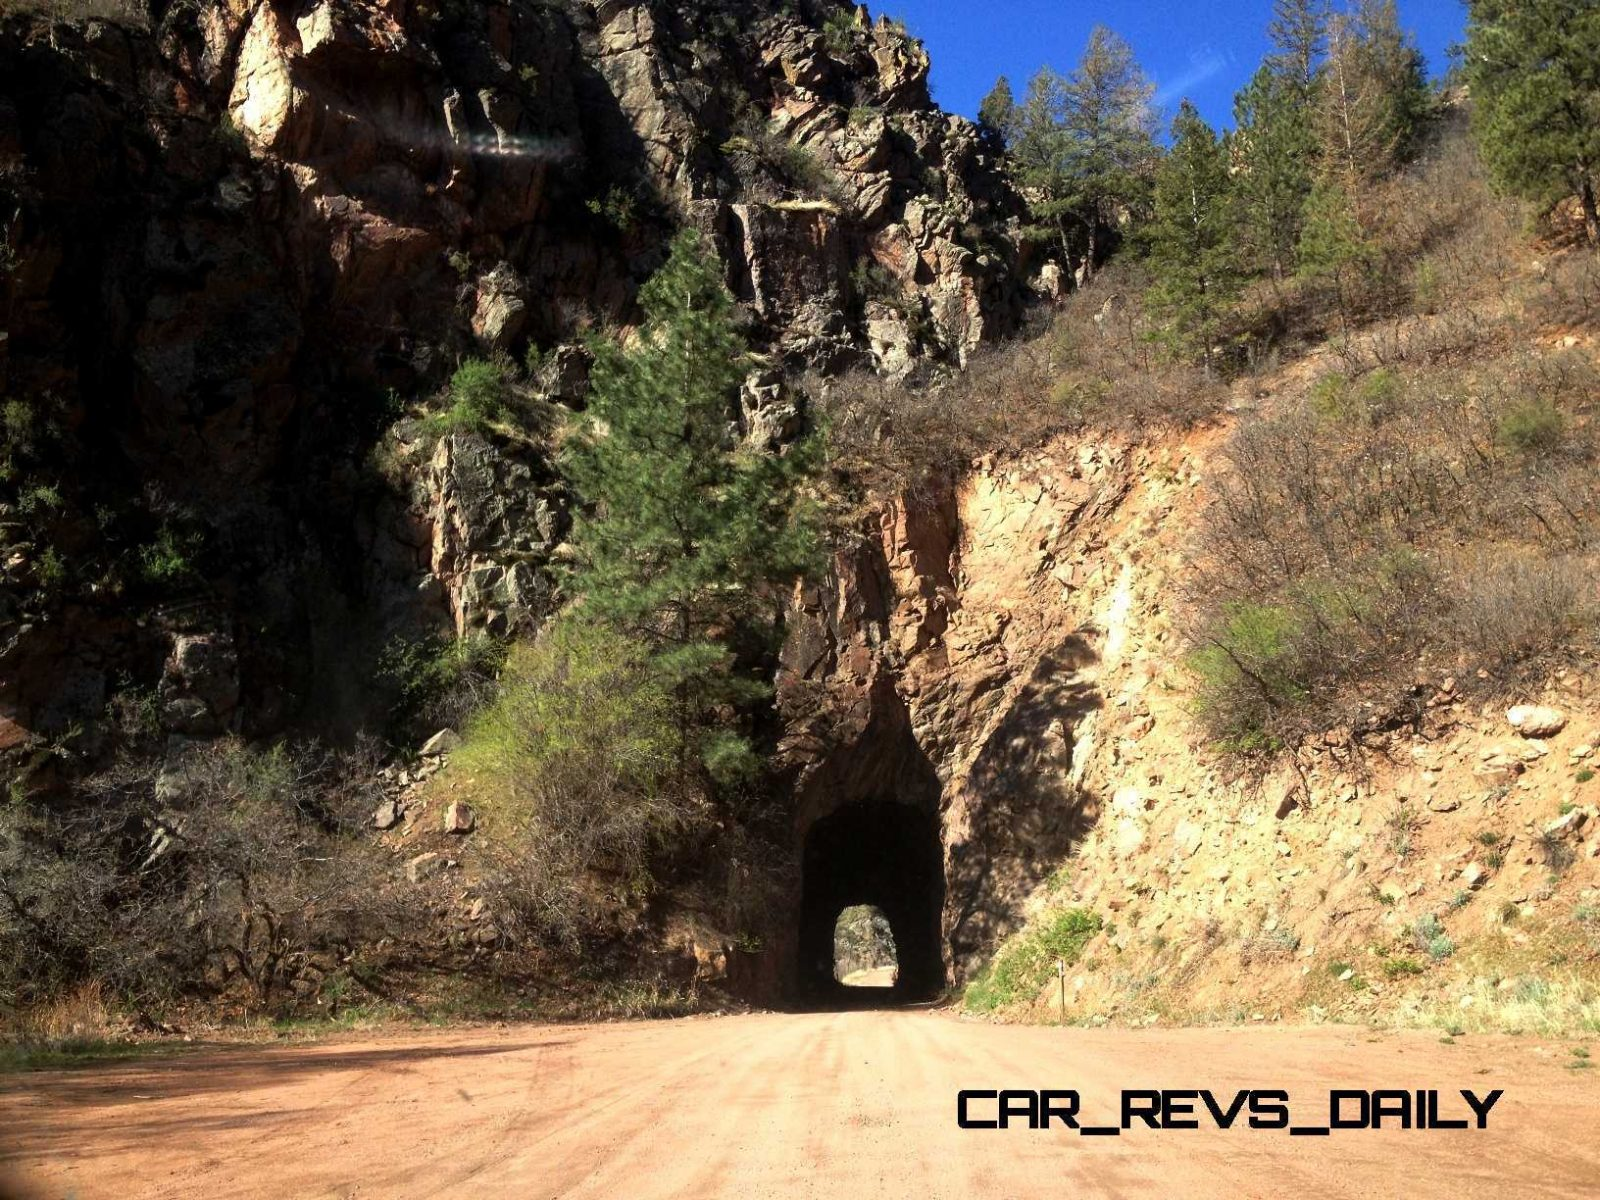 HD Driving Video: Best Rally Roads – Phantom Canyon Road in Colorado